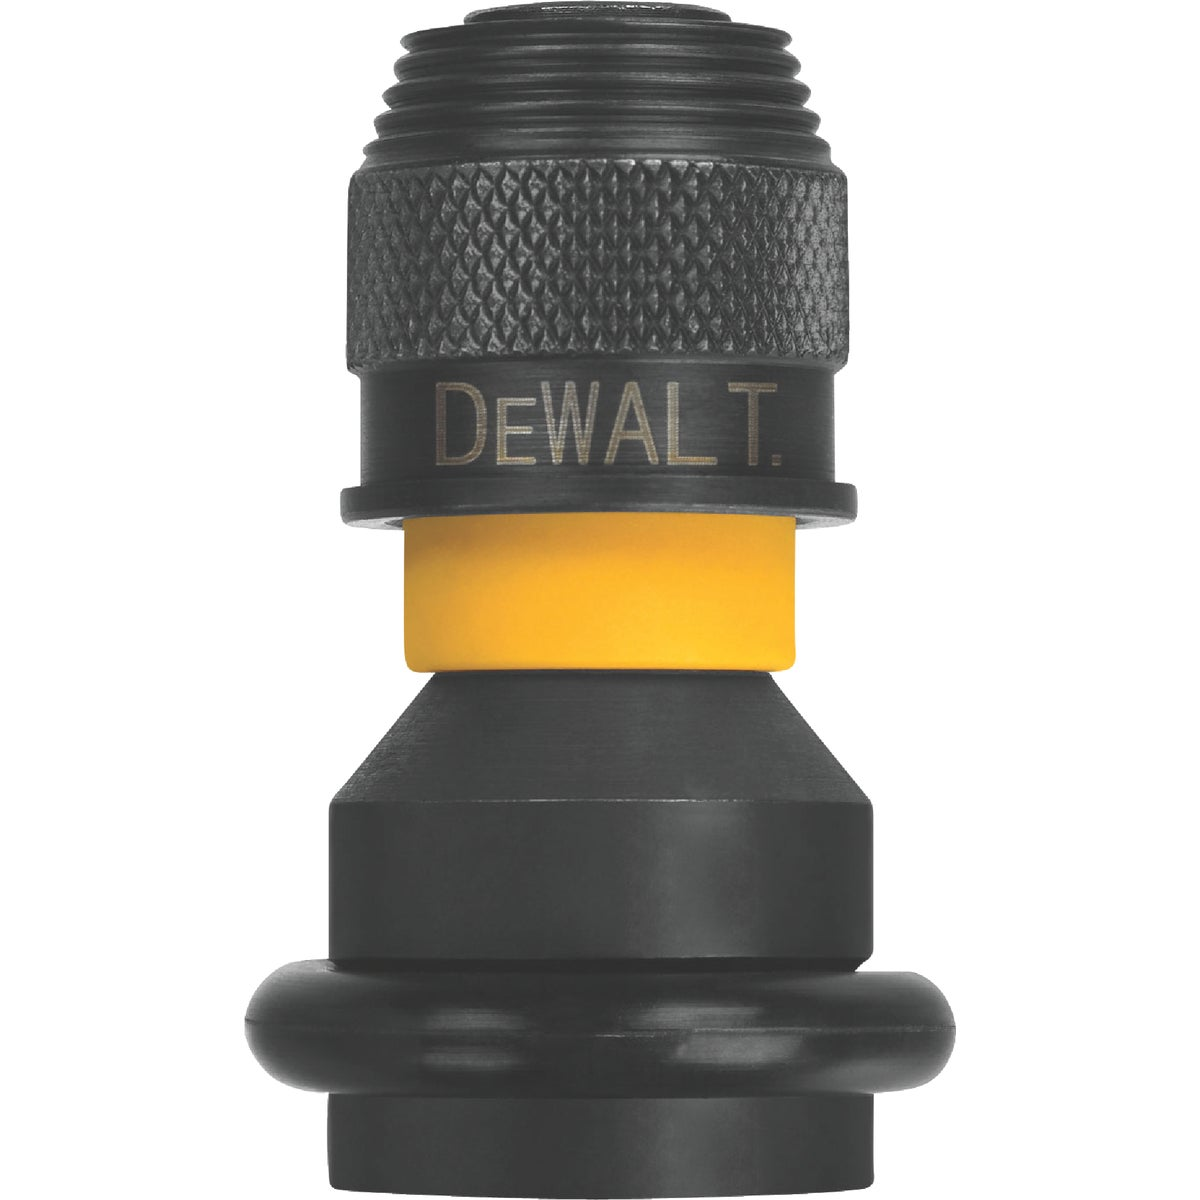 "1/2""SQ-1/4"" HEX DRIVE - DW2298 by DeWalt"